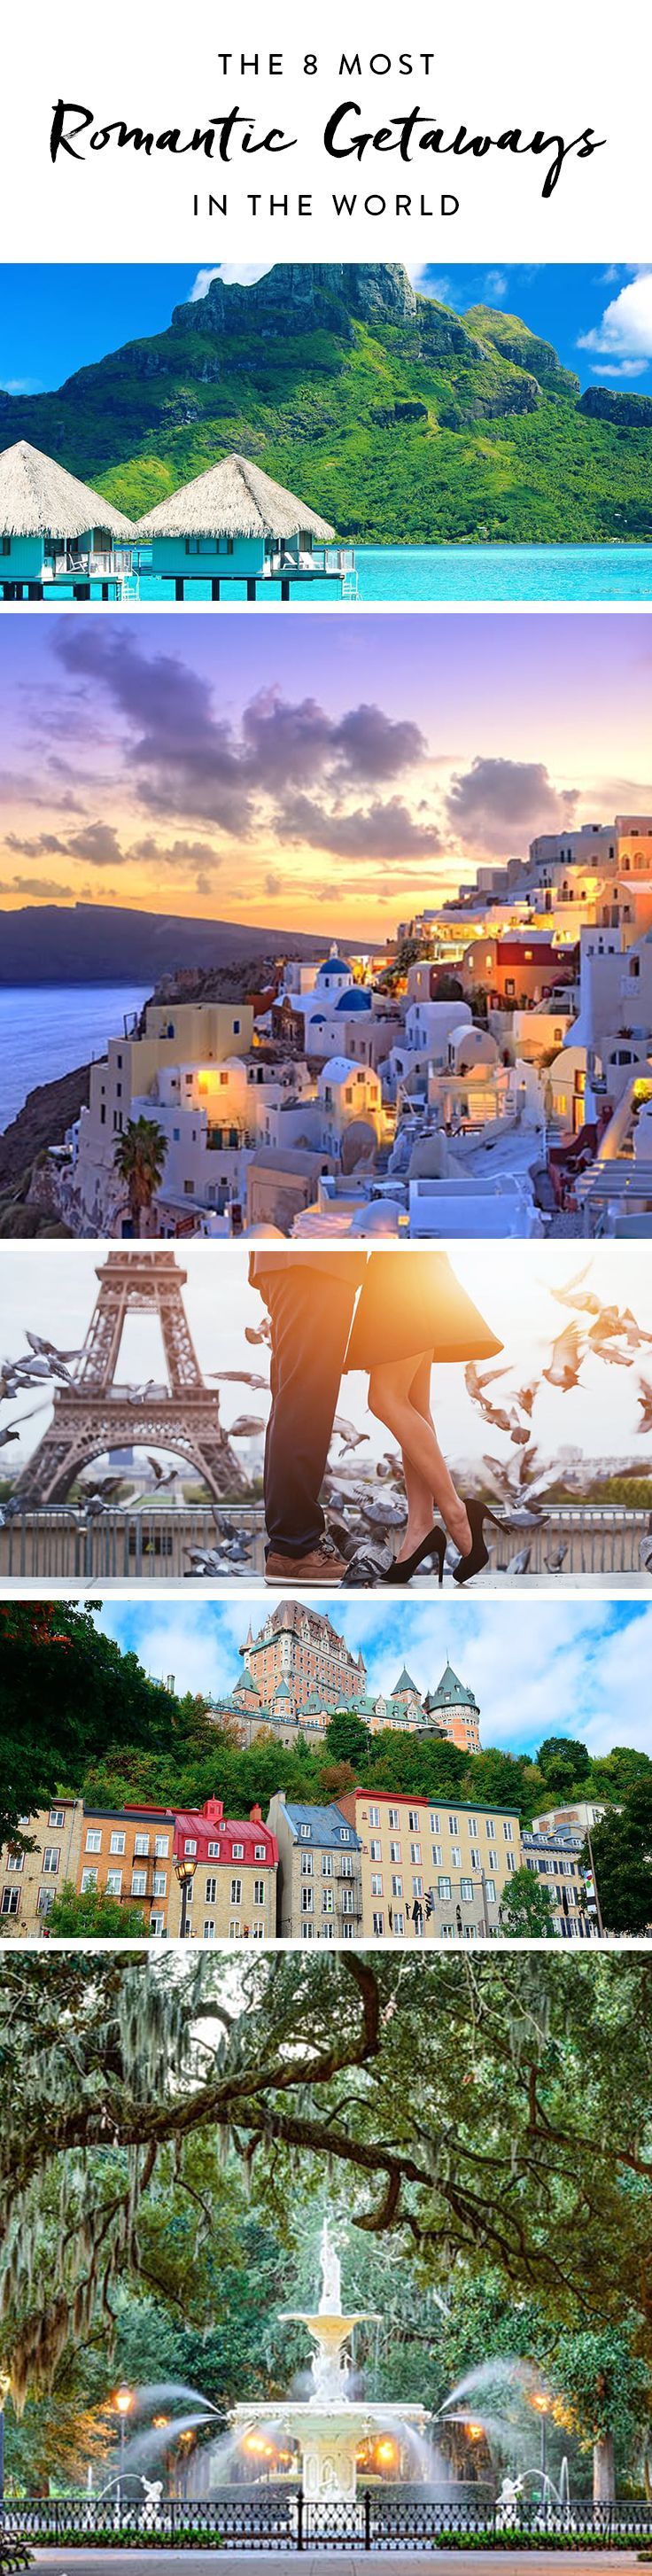 Whether you're planning a honeymoon, a Valentine's Day trip or just want to get away, a couple's vacation should be special. So don't settle on just anywhere. Here are eight of the world's romantic spots.